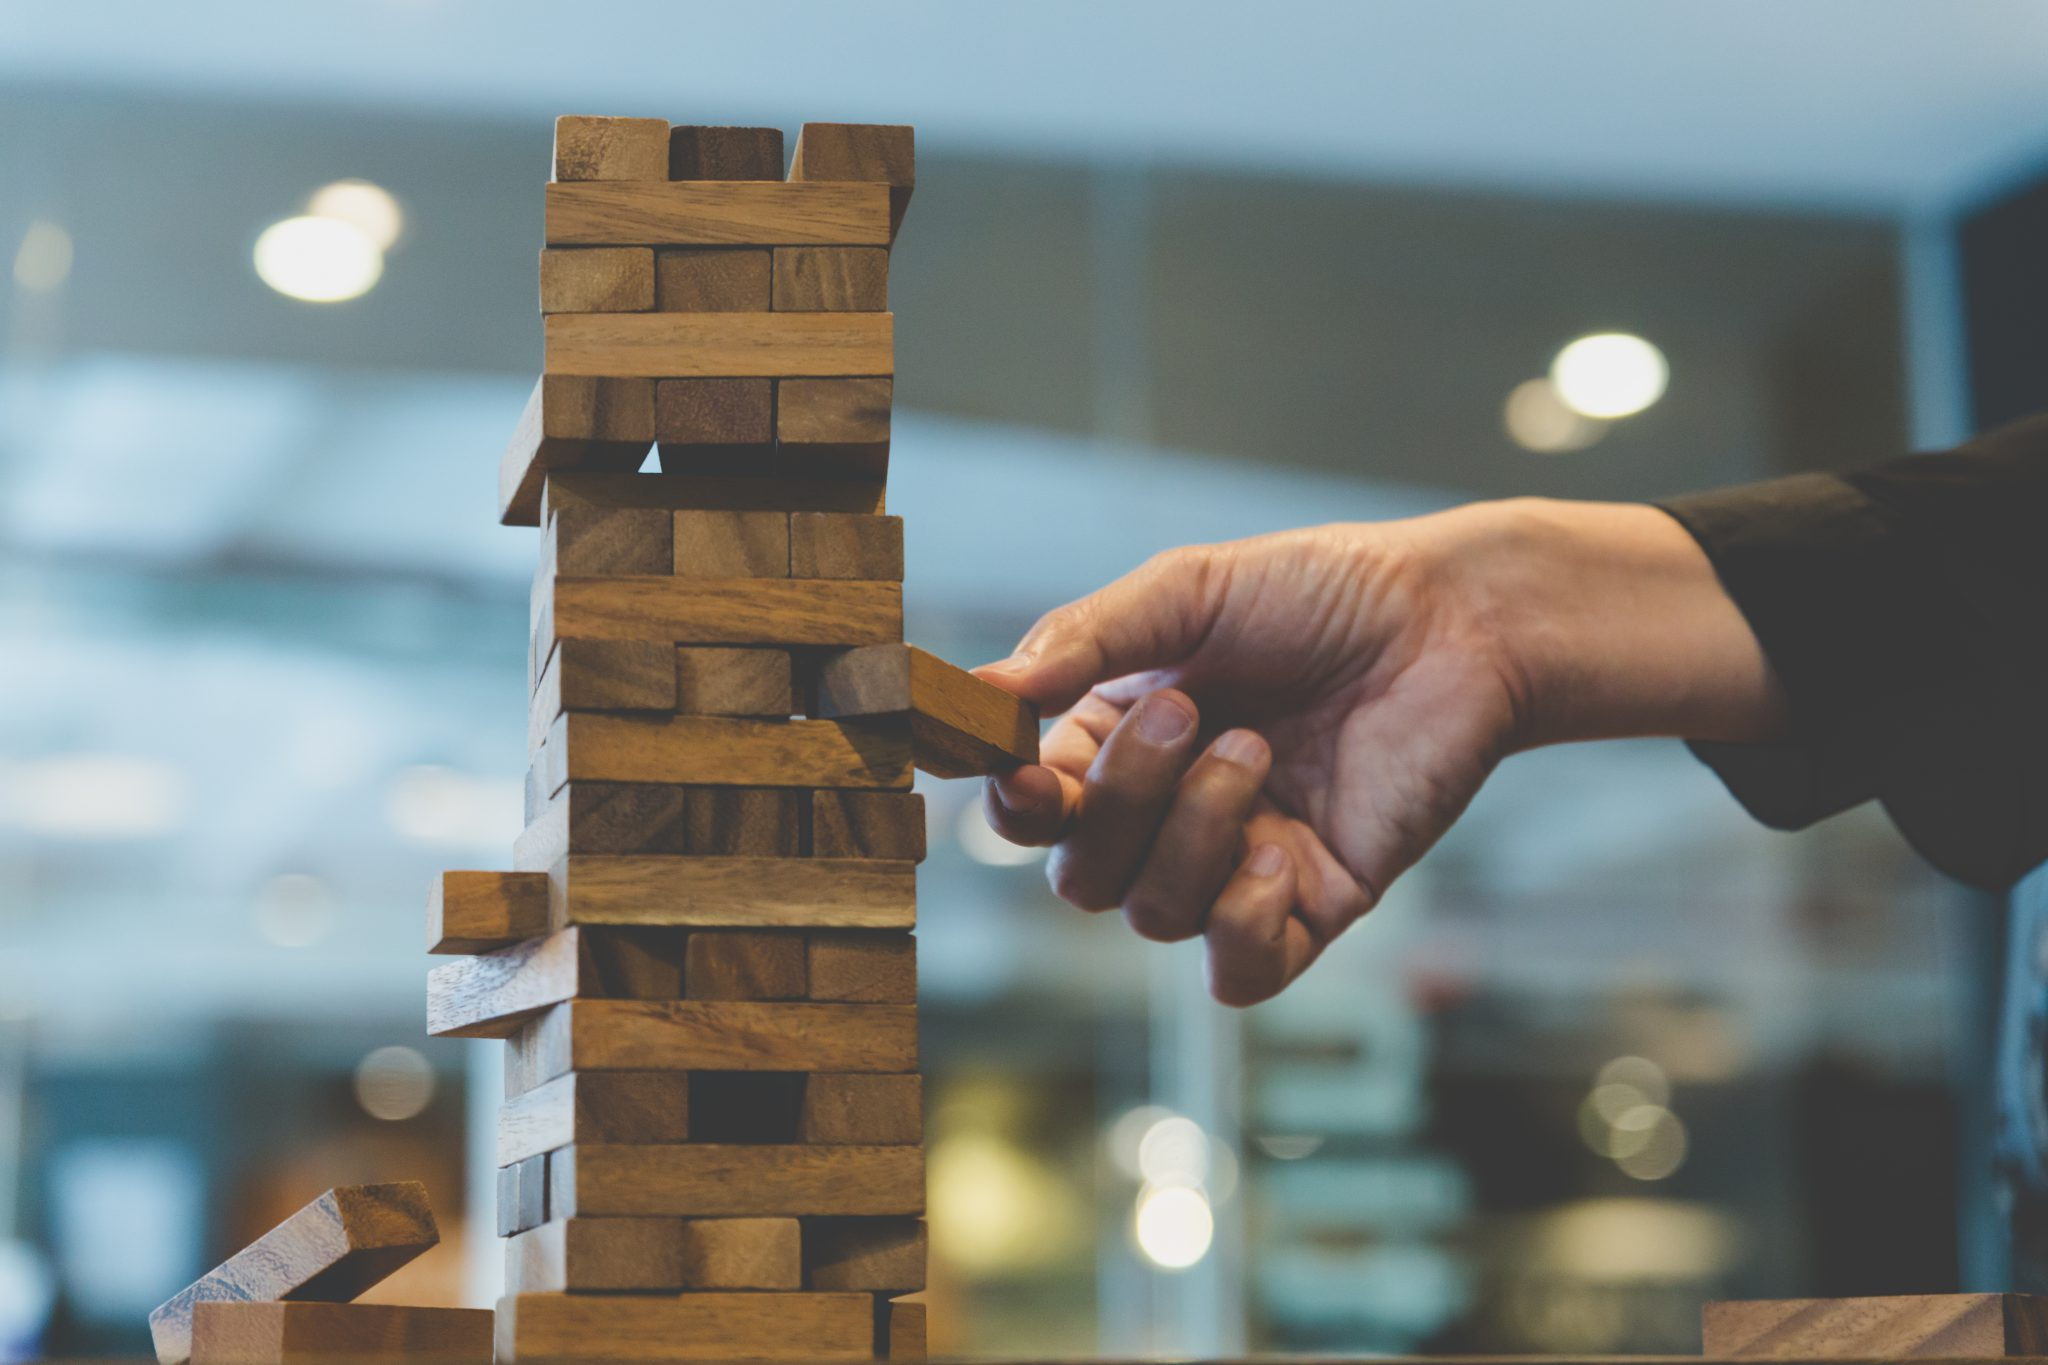 One hand is pulling out a block from a Jenga game tower to show how important strategic clarity is in the moves you make